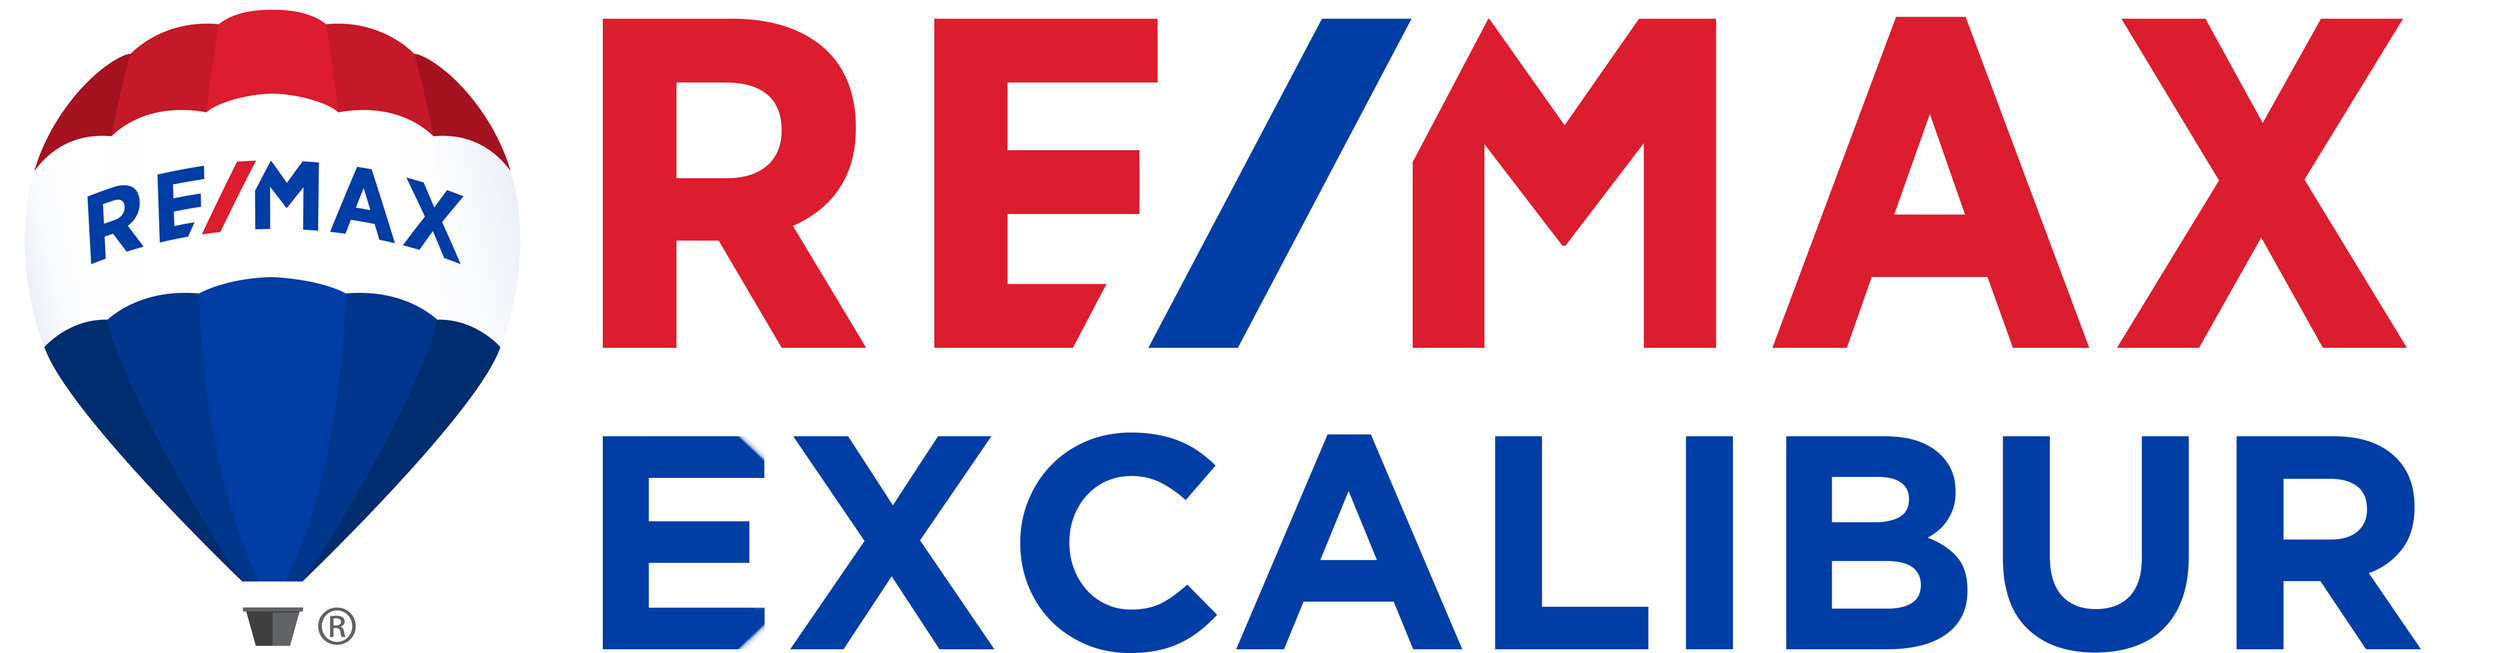 REMAX Excalibur.jpg